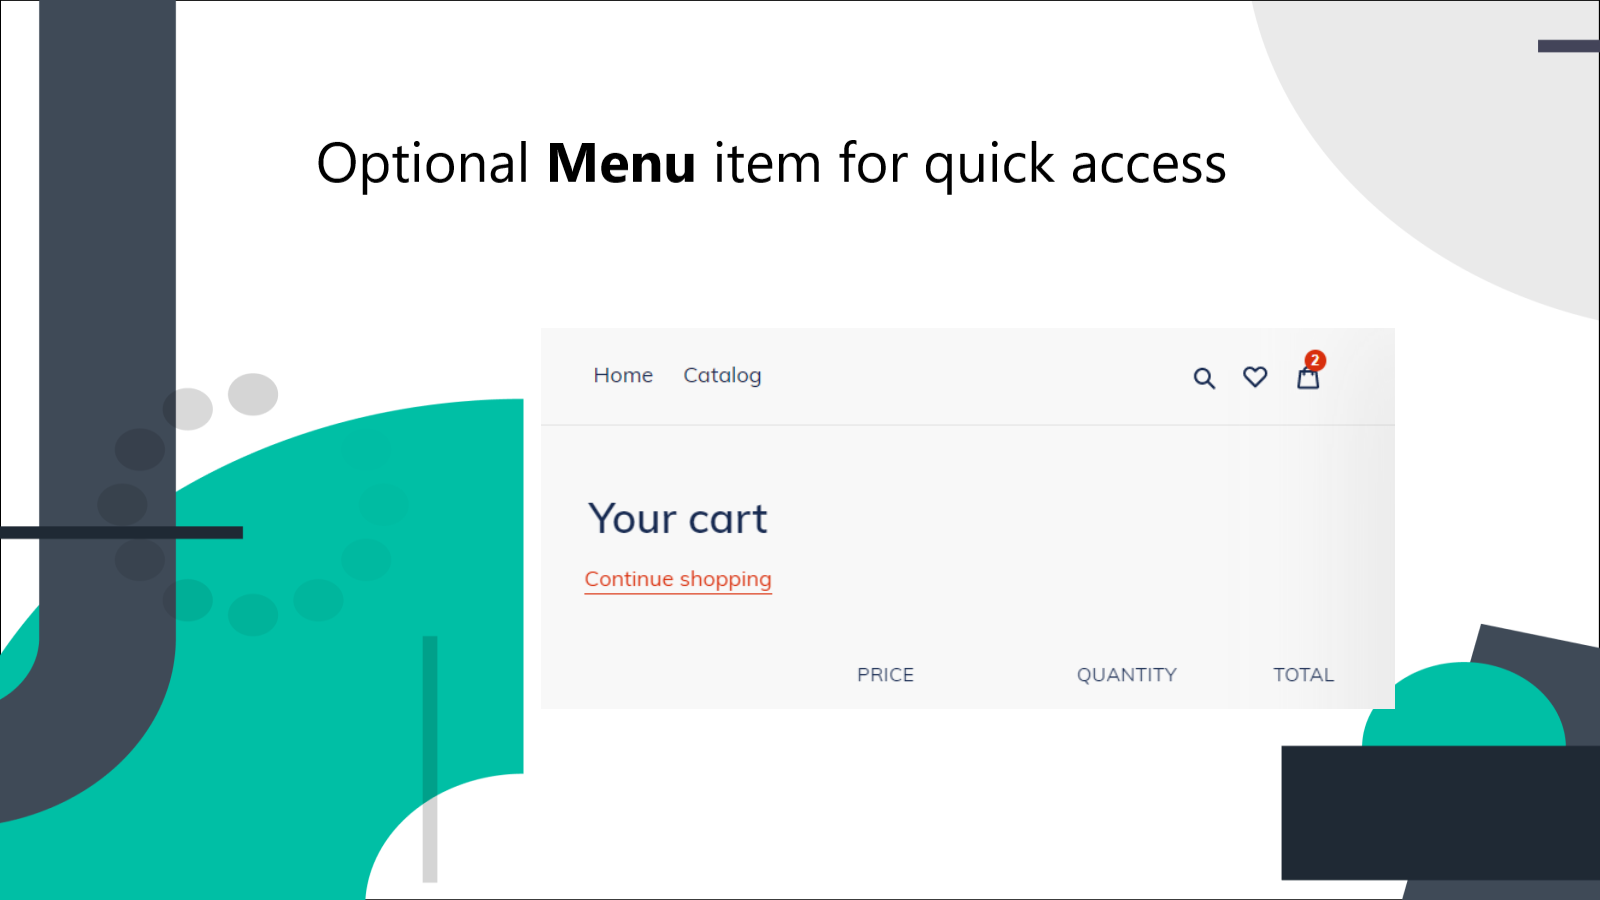 Optional Menu Item to quickly access Wishlist